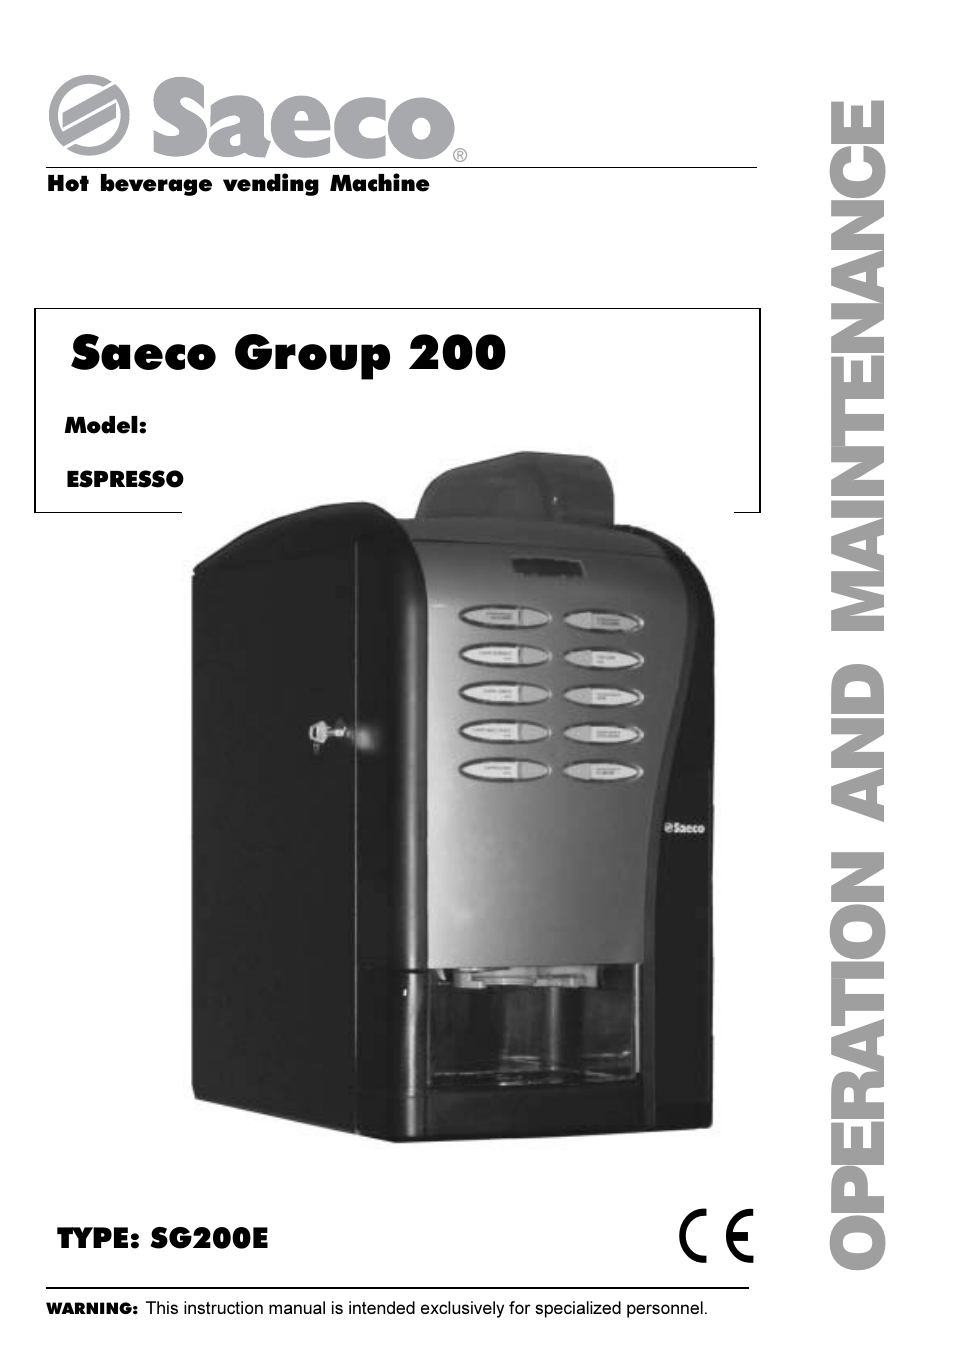 Saeco Coffee Maker Owner S Manual : Philips Saeco ESPRESSO SG200E User Manual 68 pages